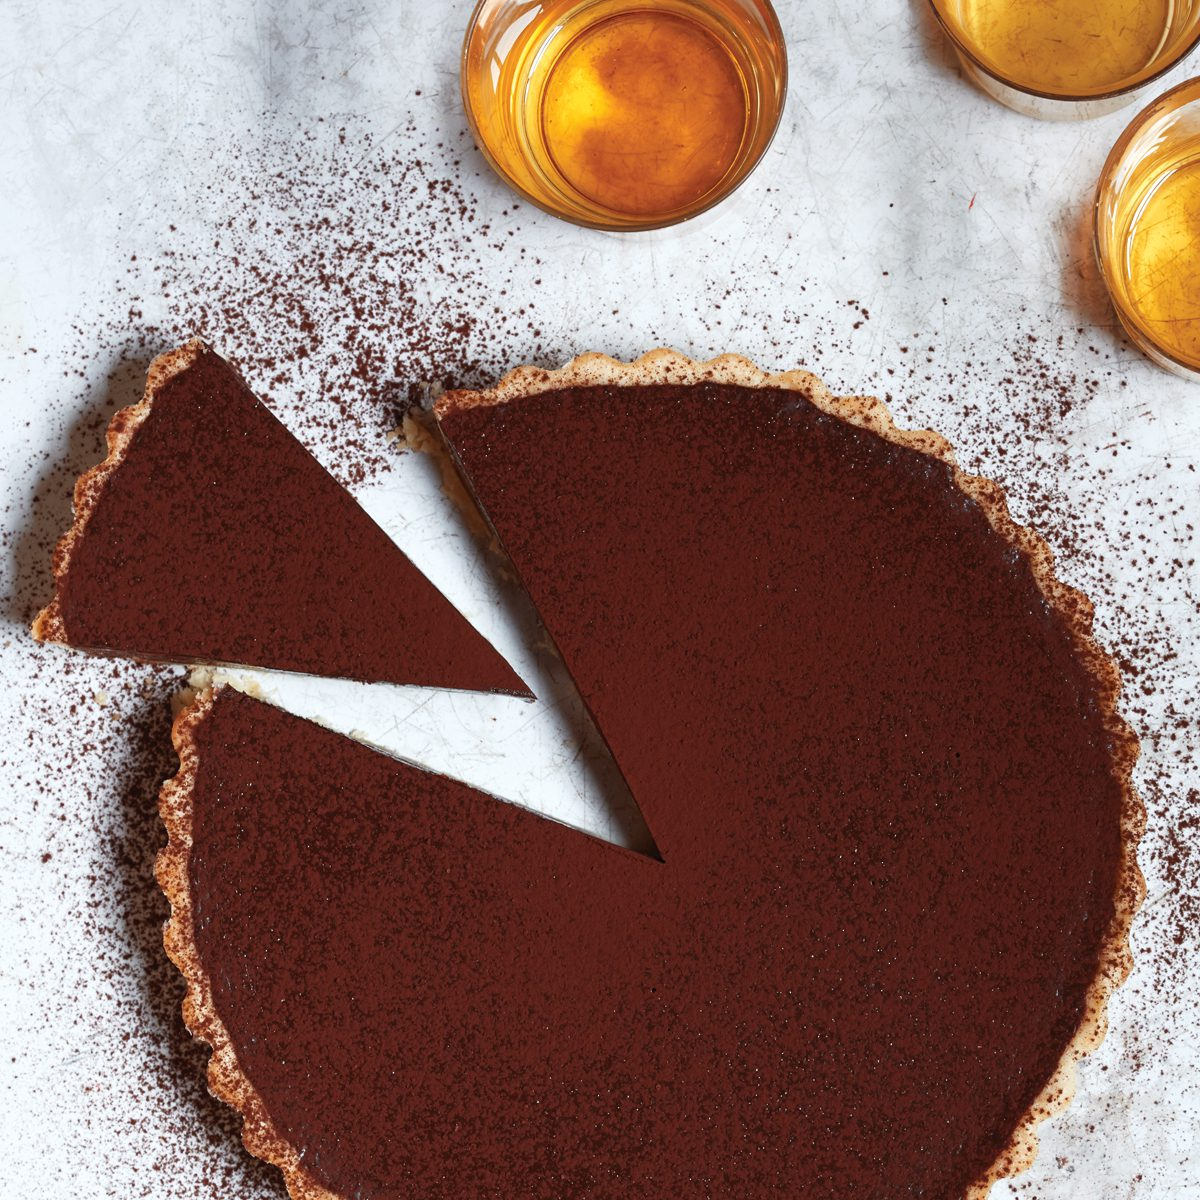 Chocolate Cognac Tart. | Photo by Aya Brackett.